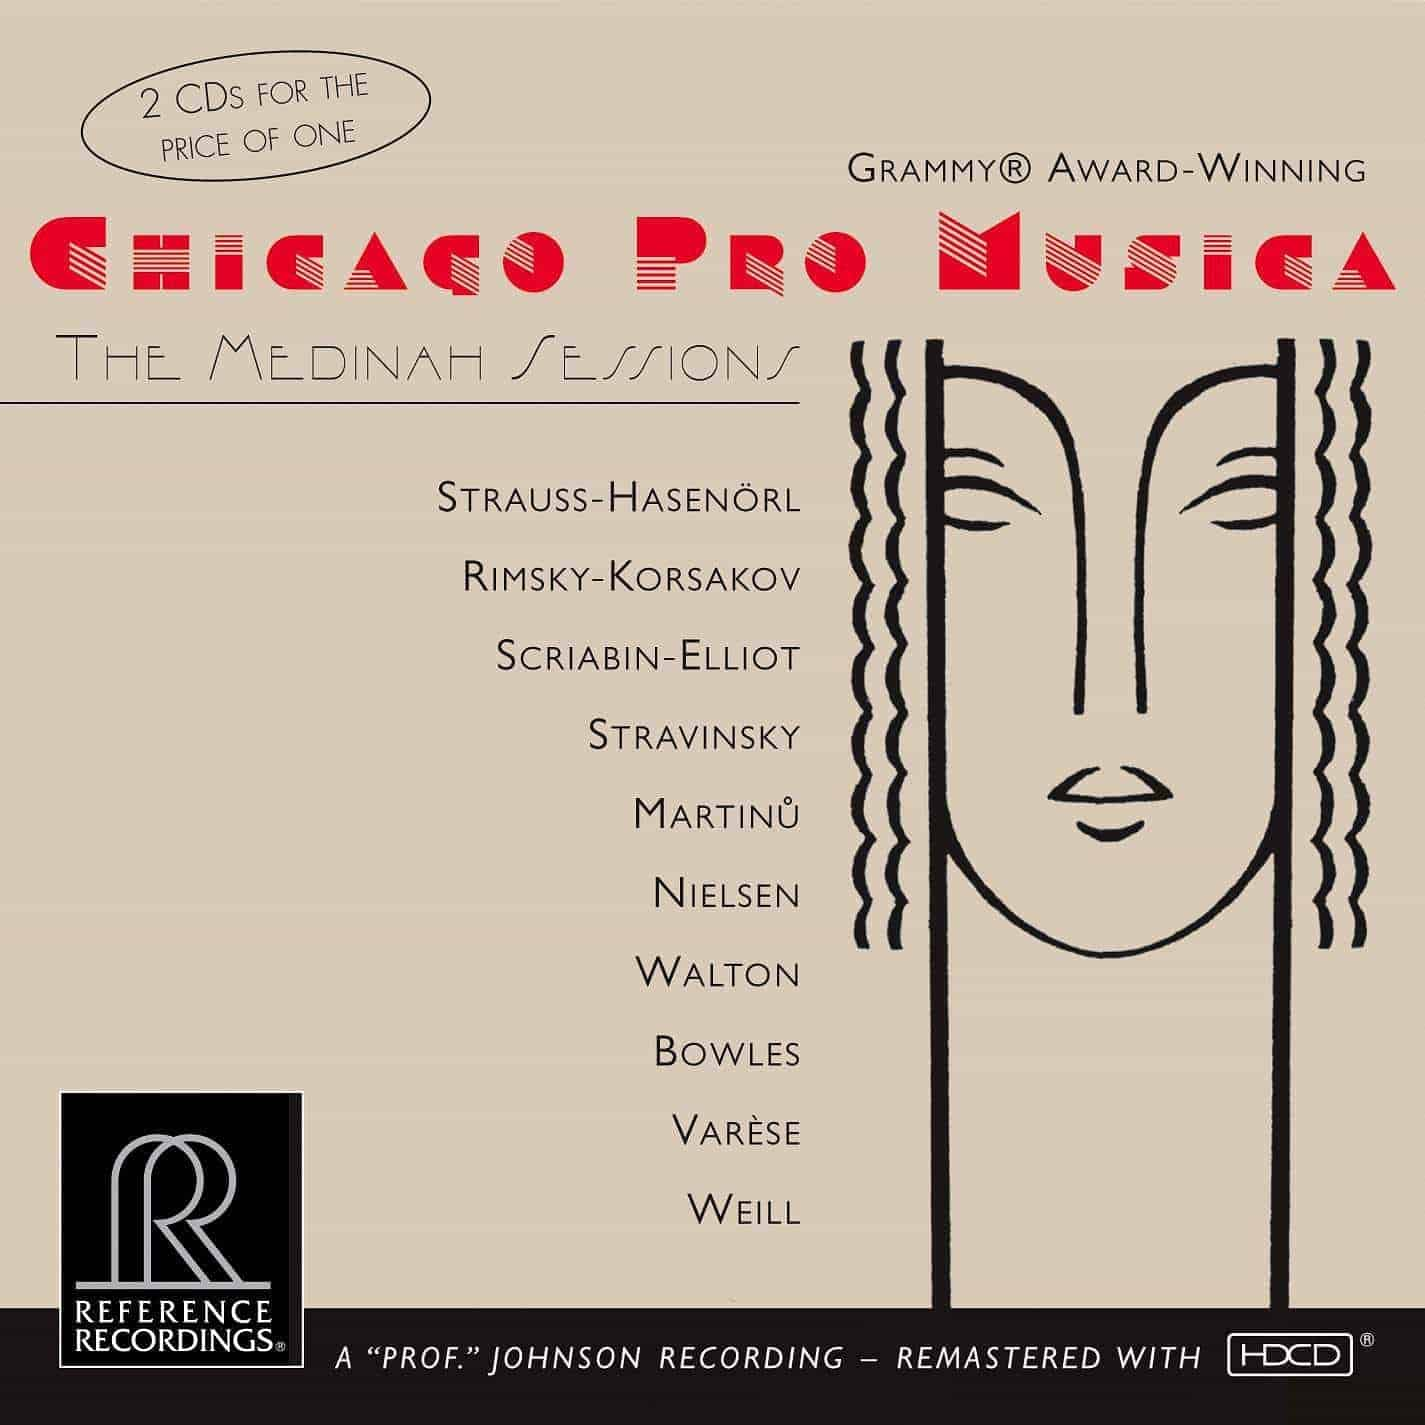 The Medinah Sessions | Chicago Pro Musica